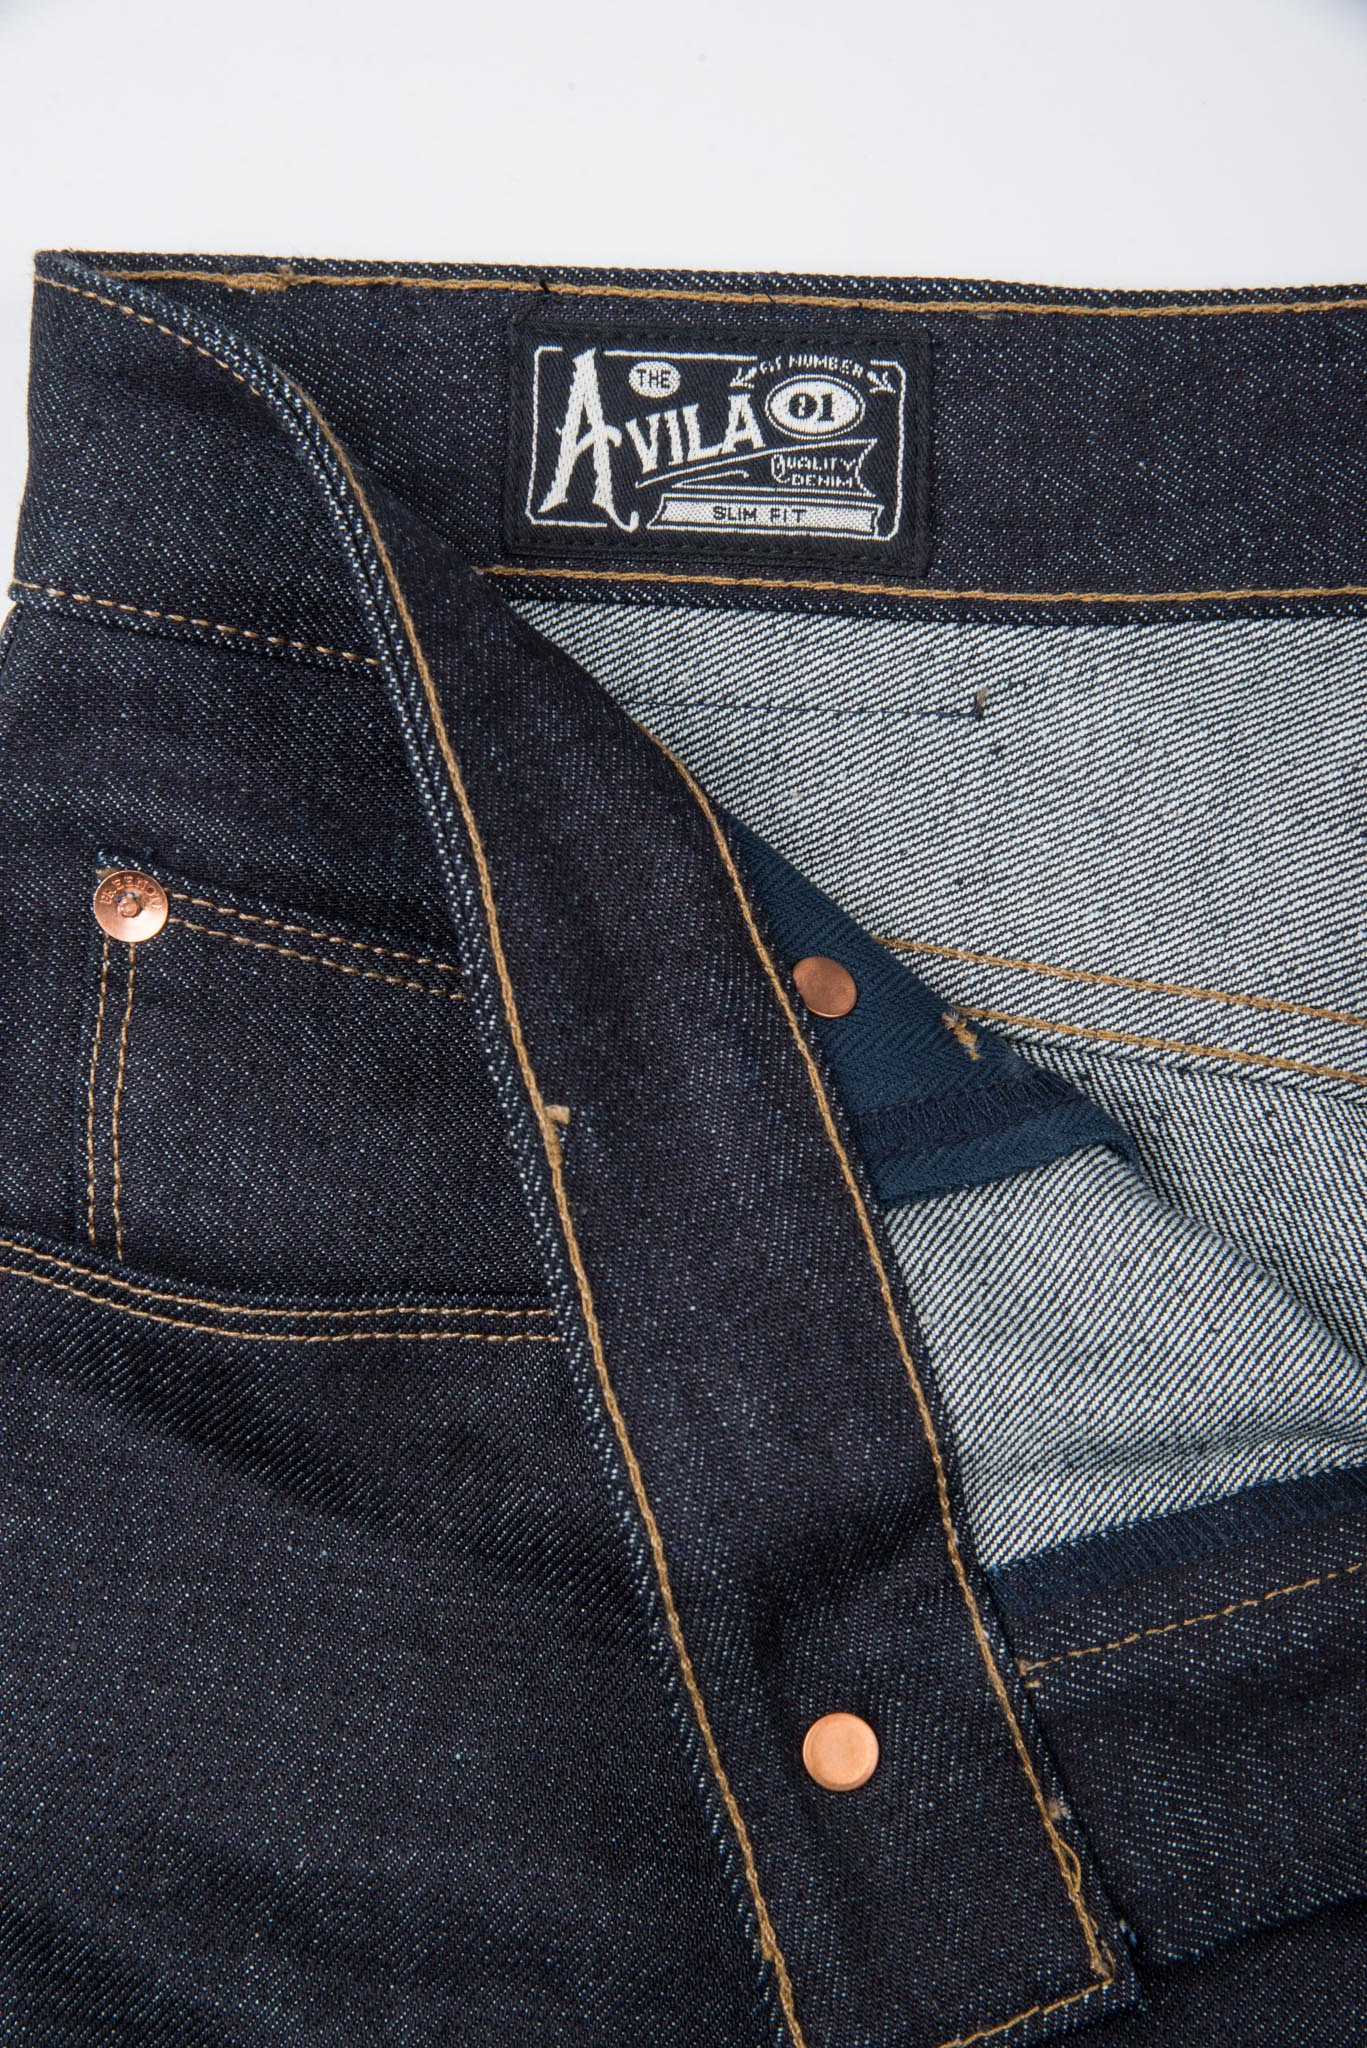 Avila Slim Taper <span> 14.50 ounce Kaihara Denim</span>